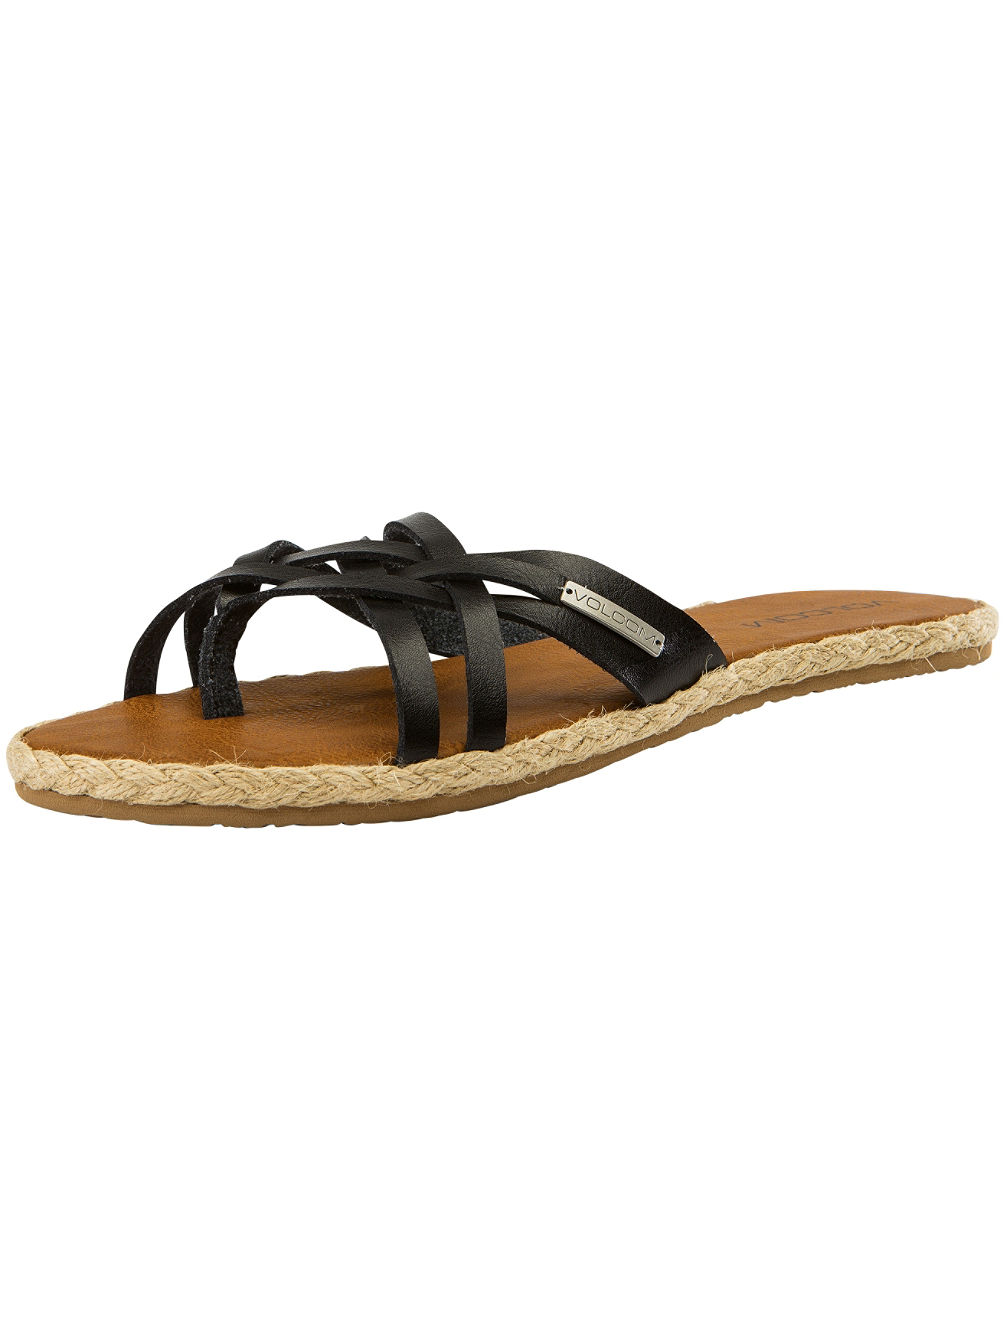 Check In Sandals Women